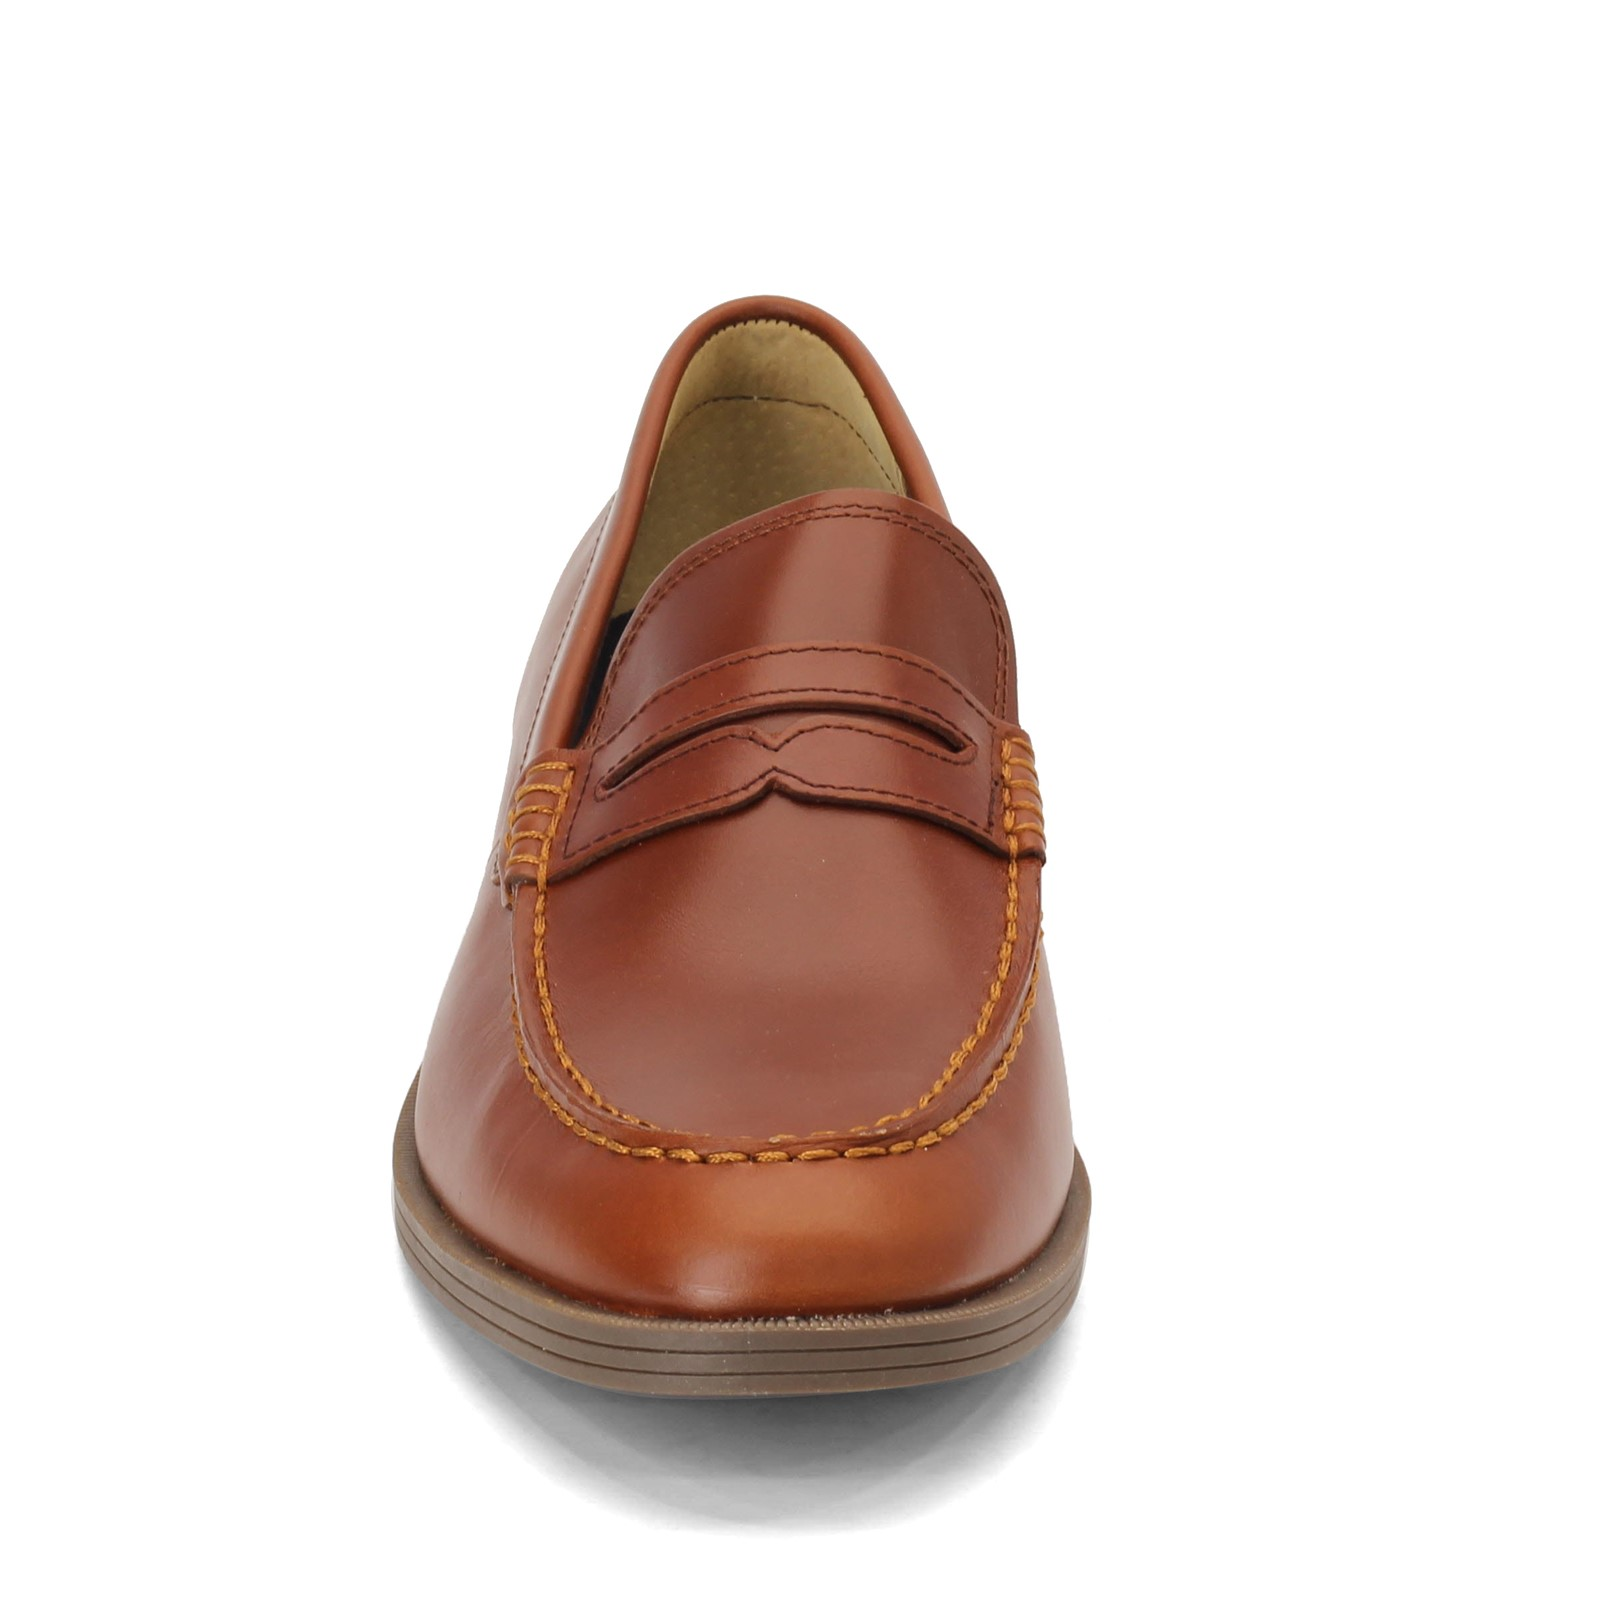 Men's Sperry, Manchester Penny Loafer | Peltz Shoes